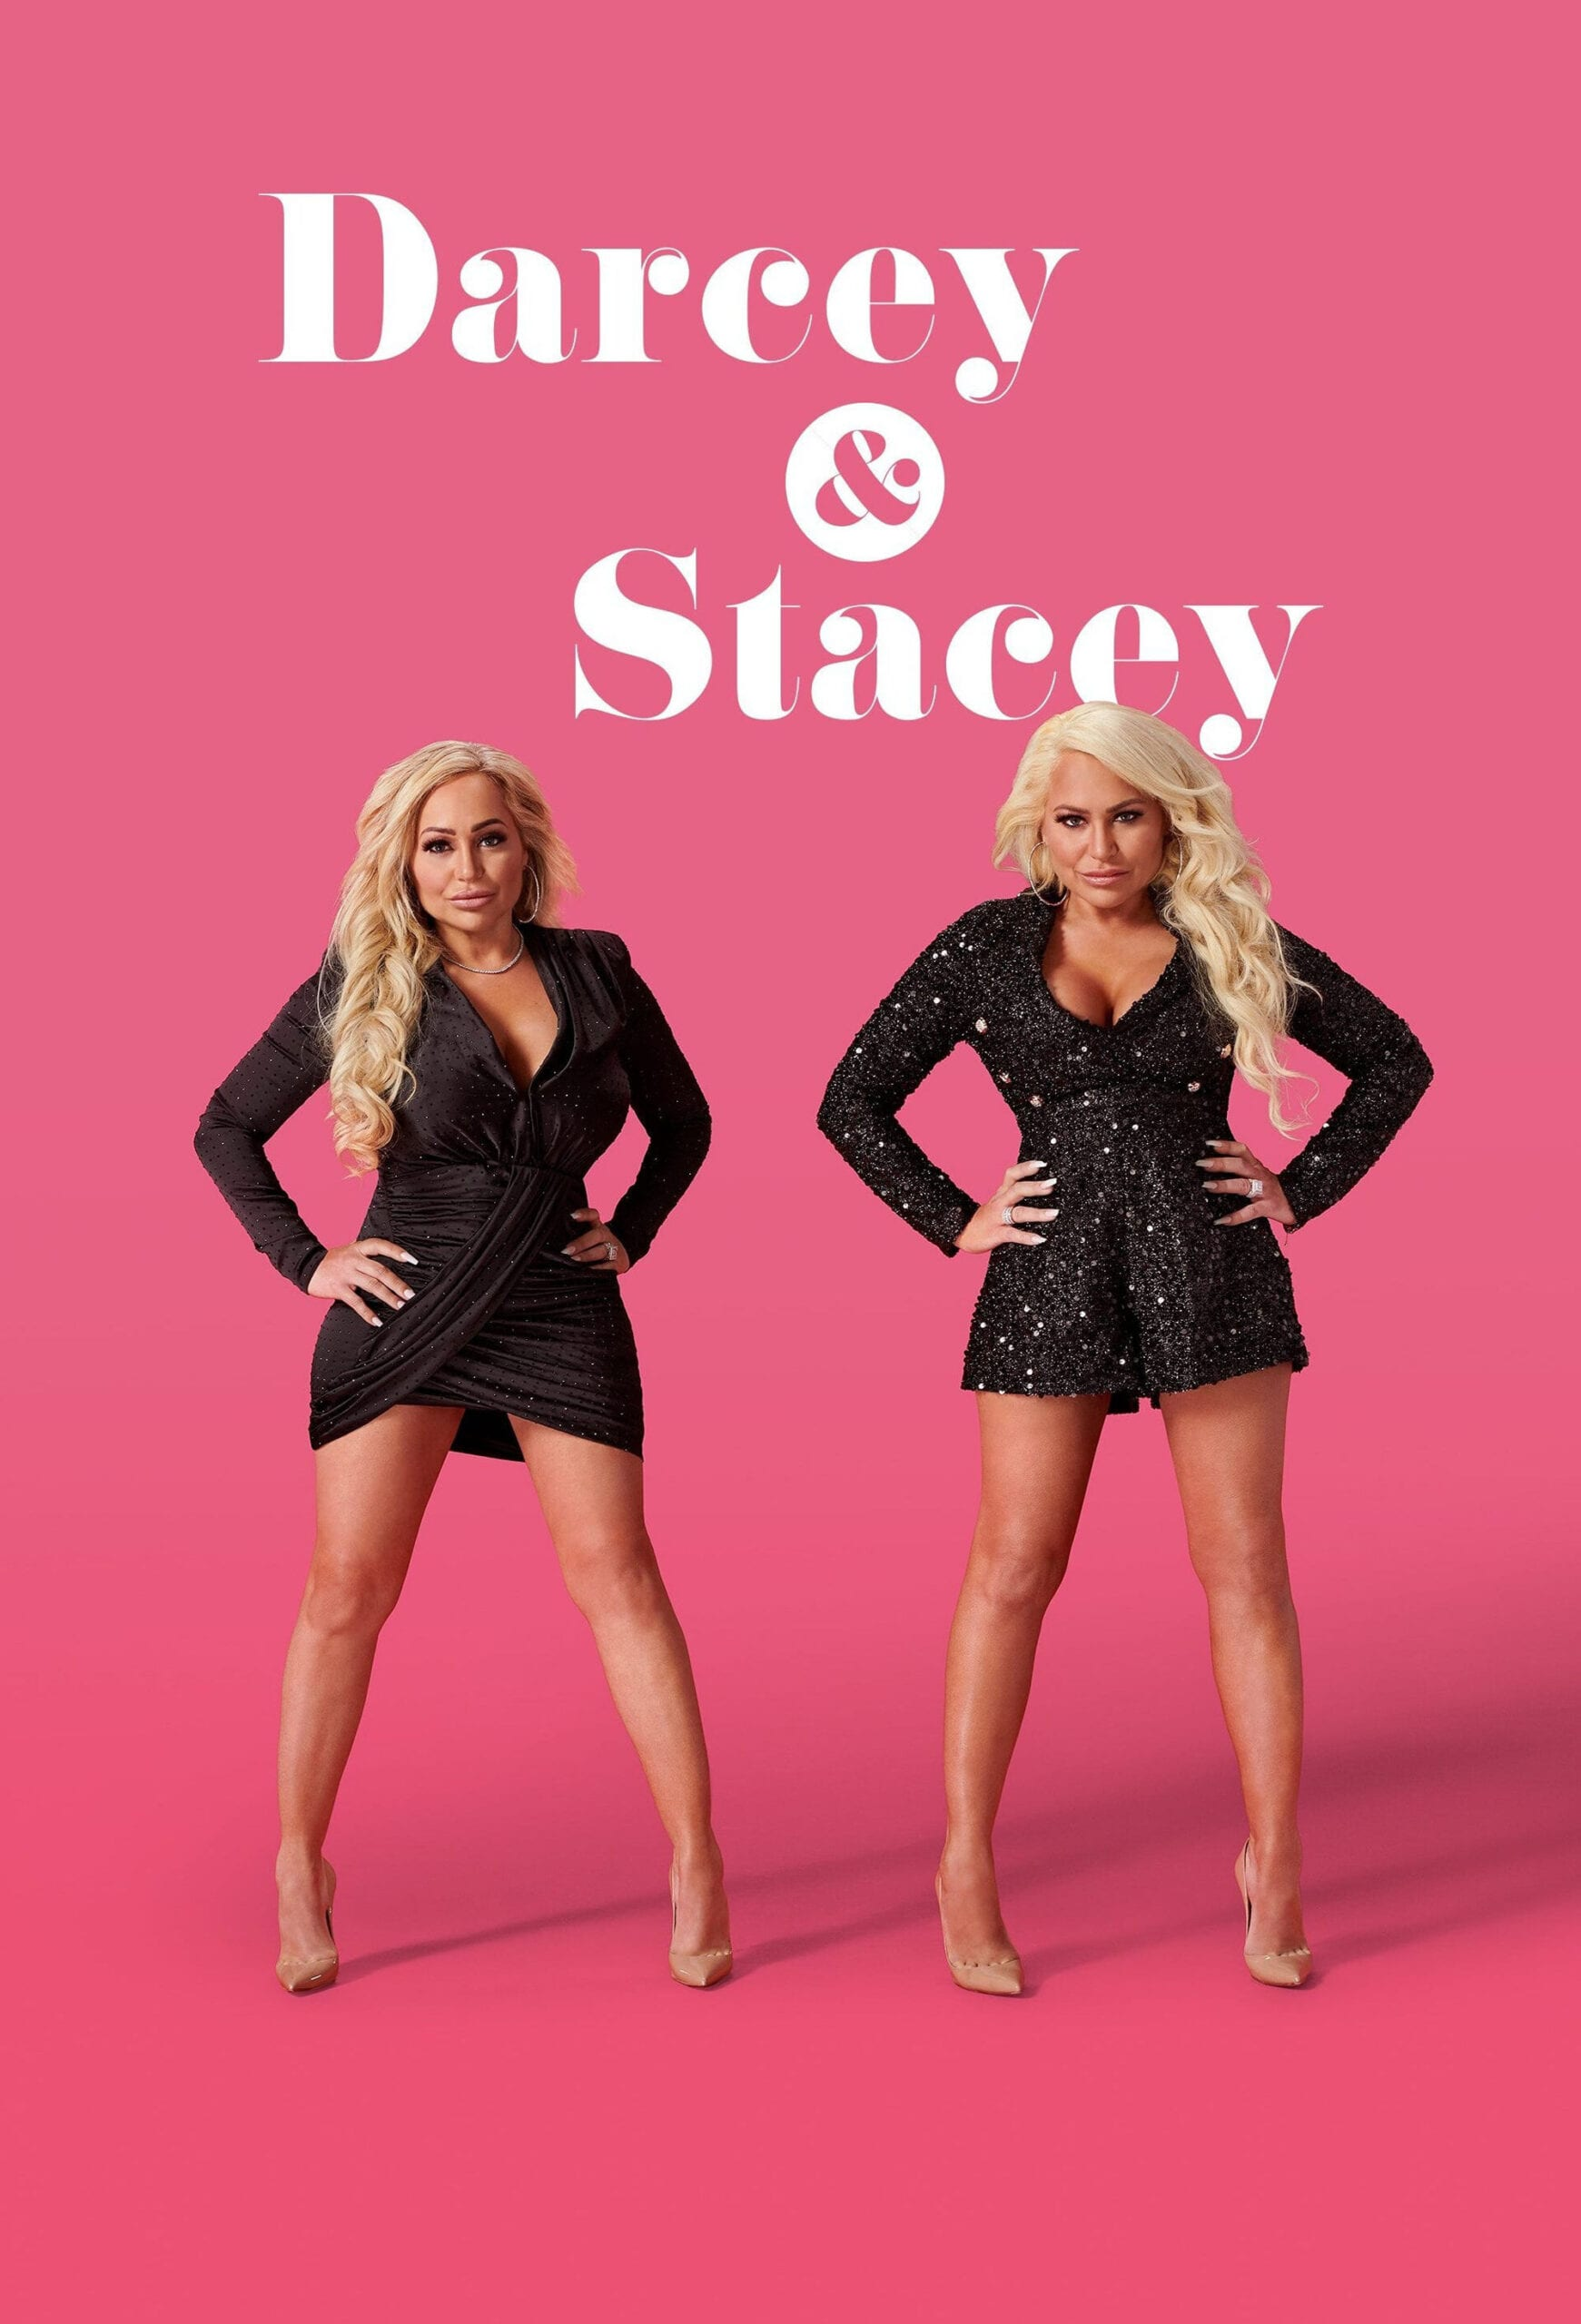 Darcey & Stacey teaser image